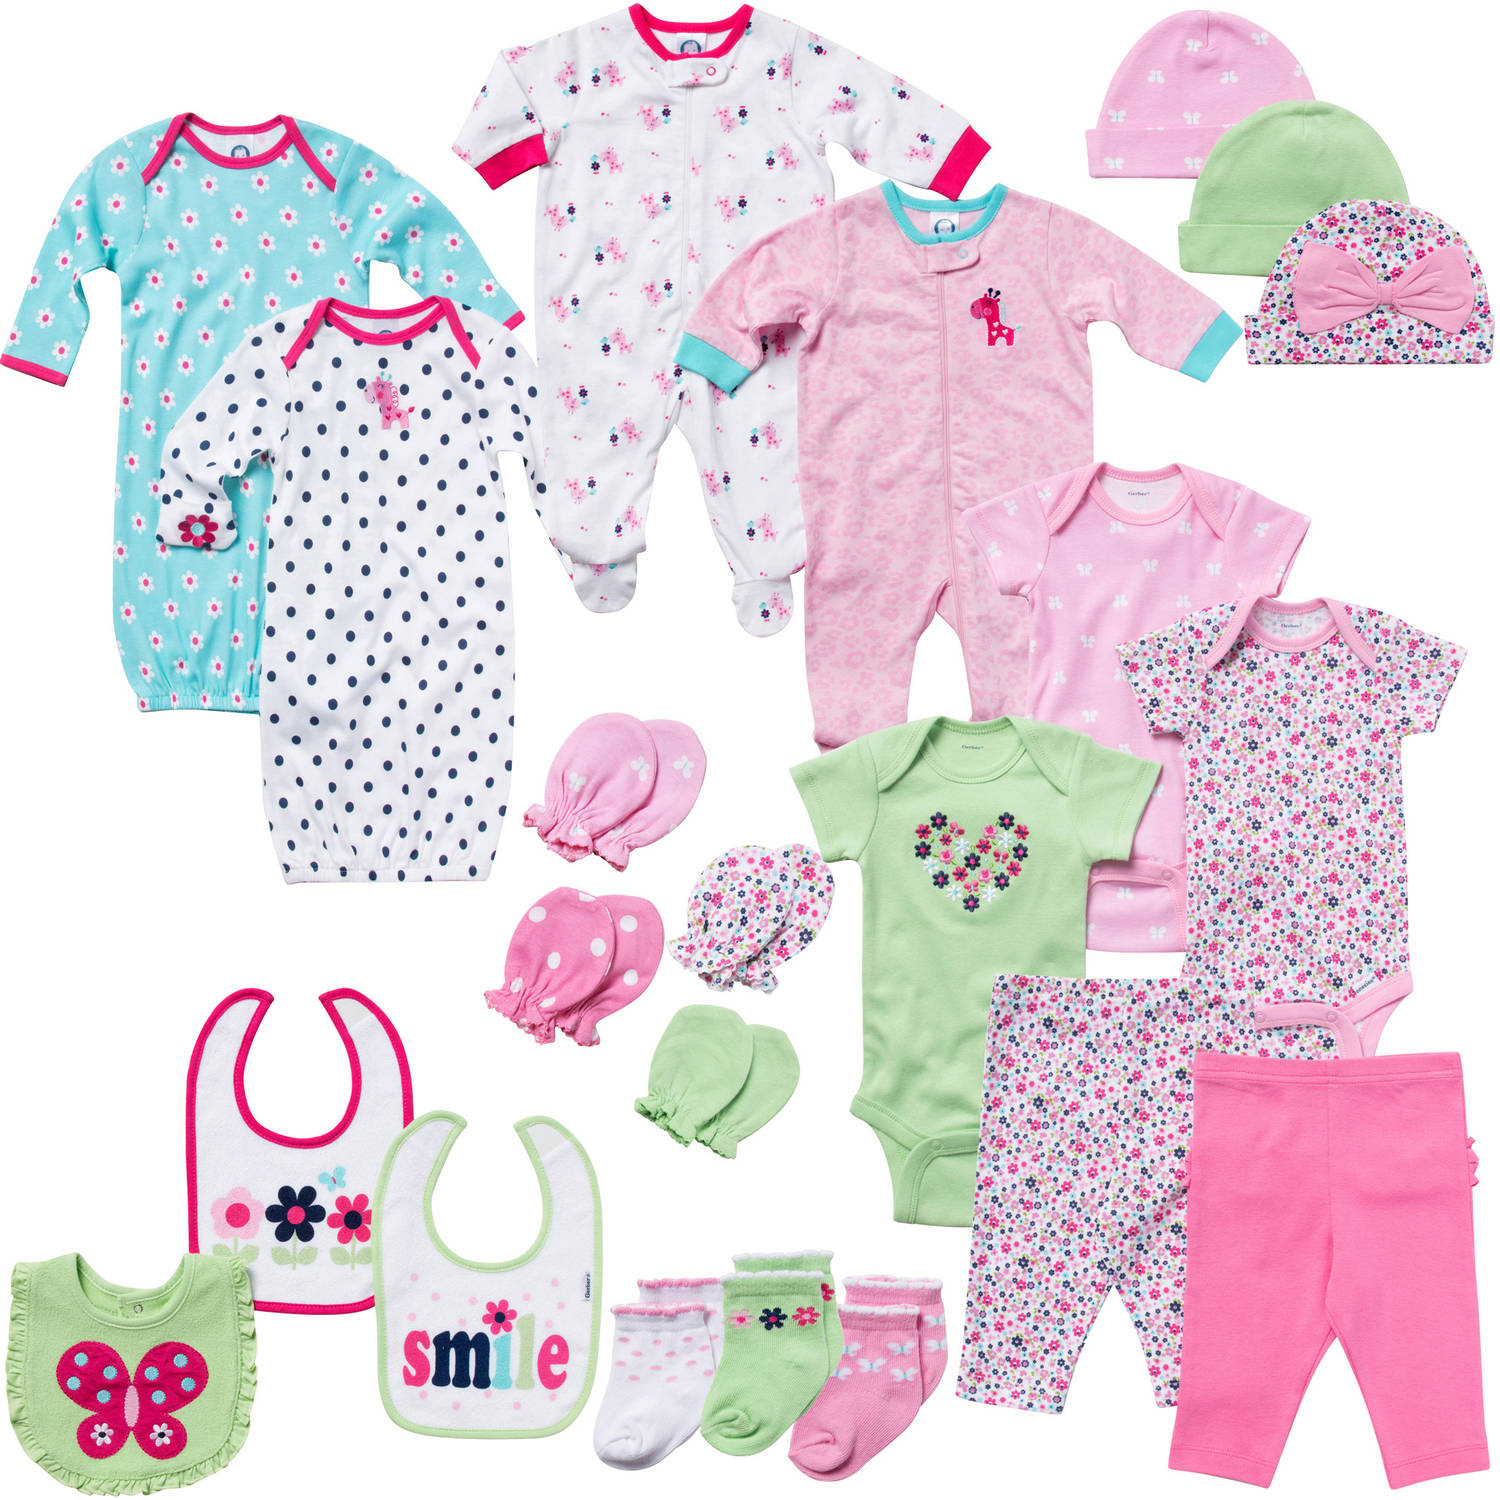 Gerber Newborn Baby Girl Perfect Baby Shower Gift Layette Set, Pink,  22-Piece